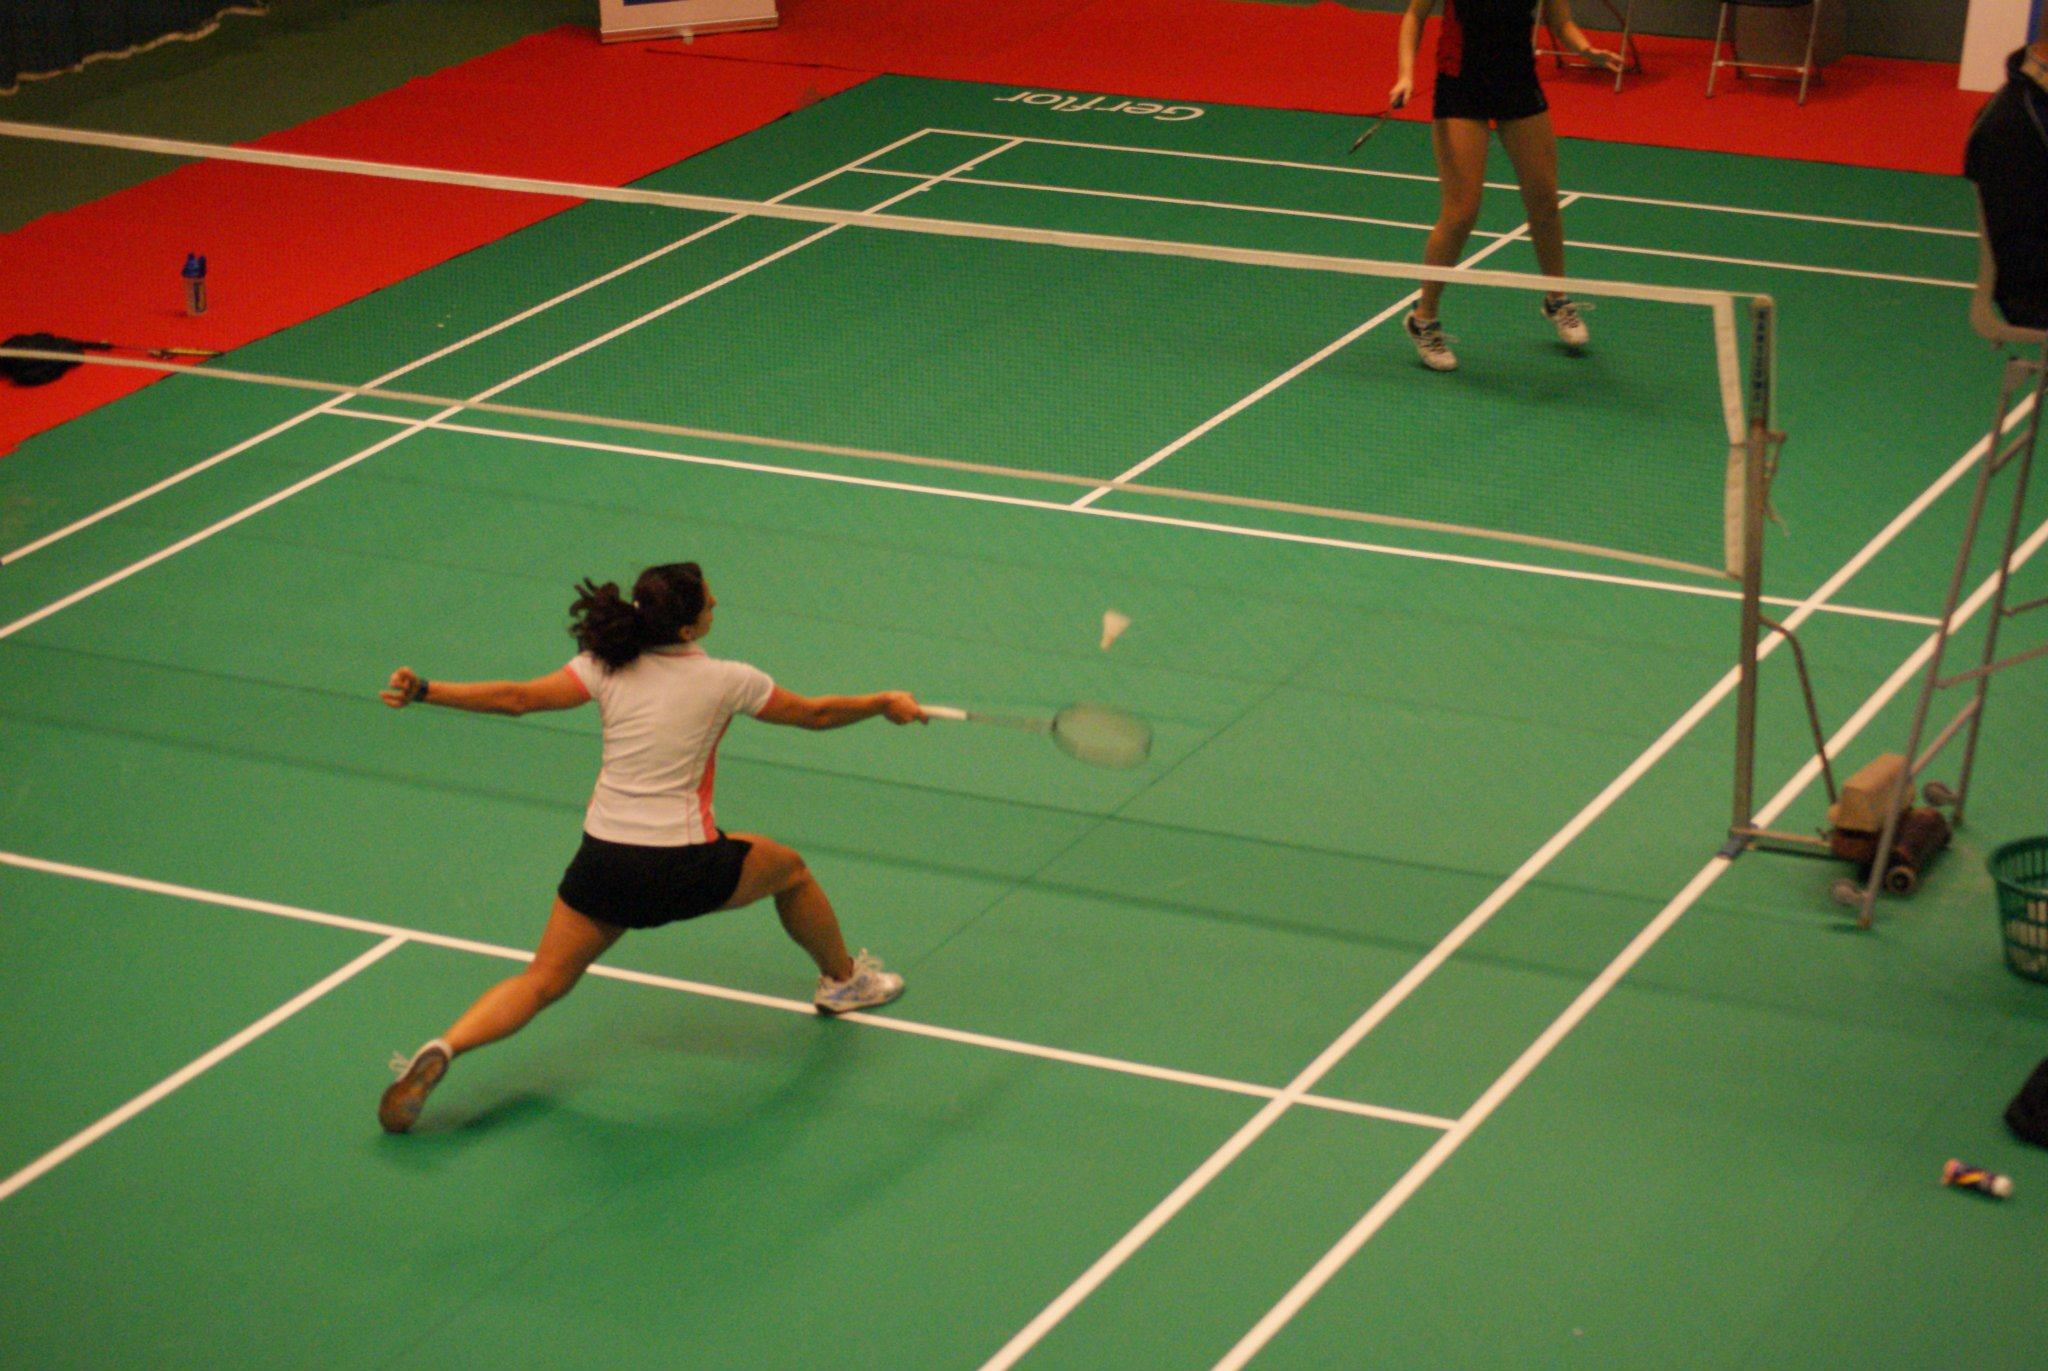 essays about badminton game boys badminton by yi zhu color